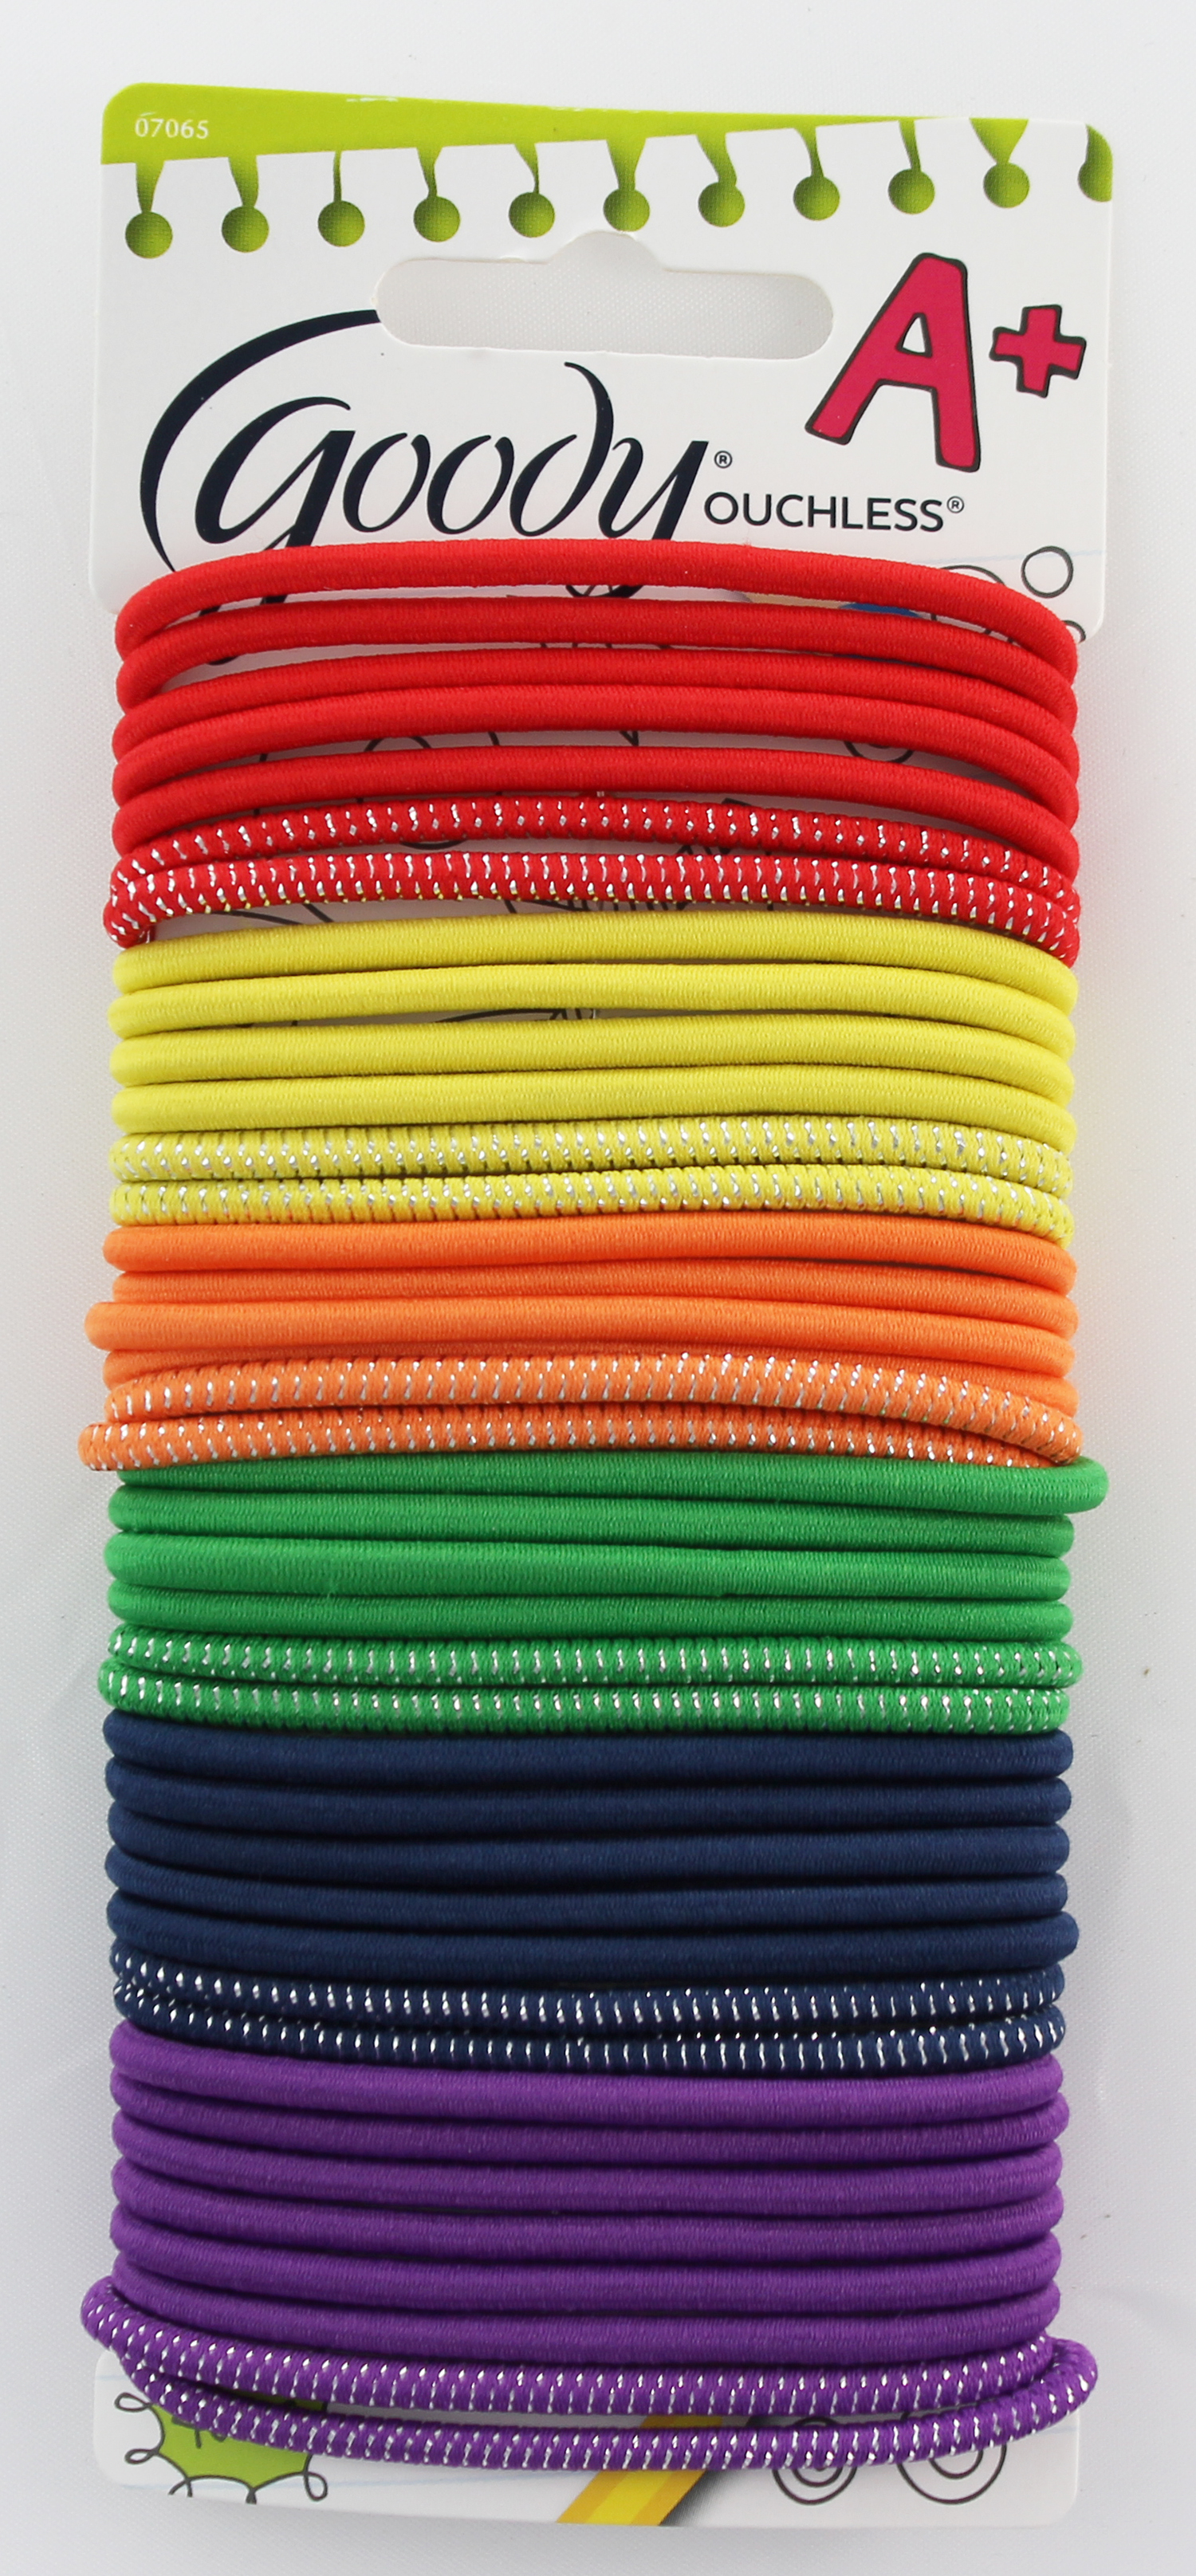 Goody Ouchless Assorted Color Elastic Fabric Hair Tie 1947407 07065